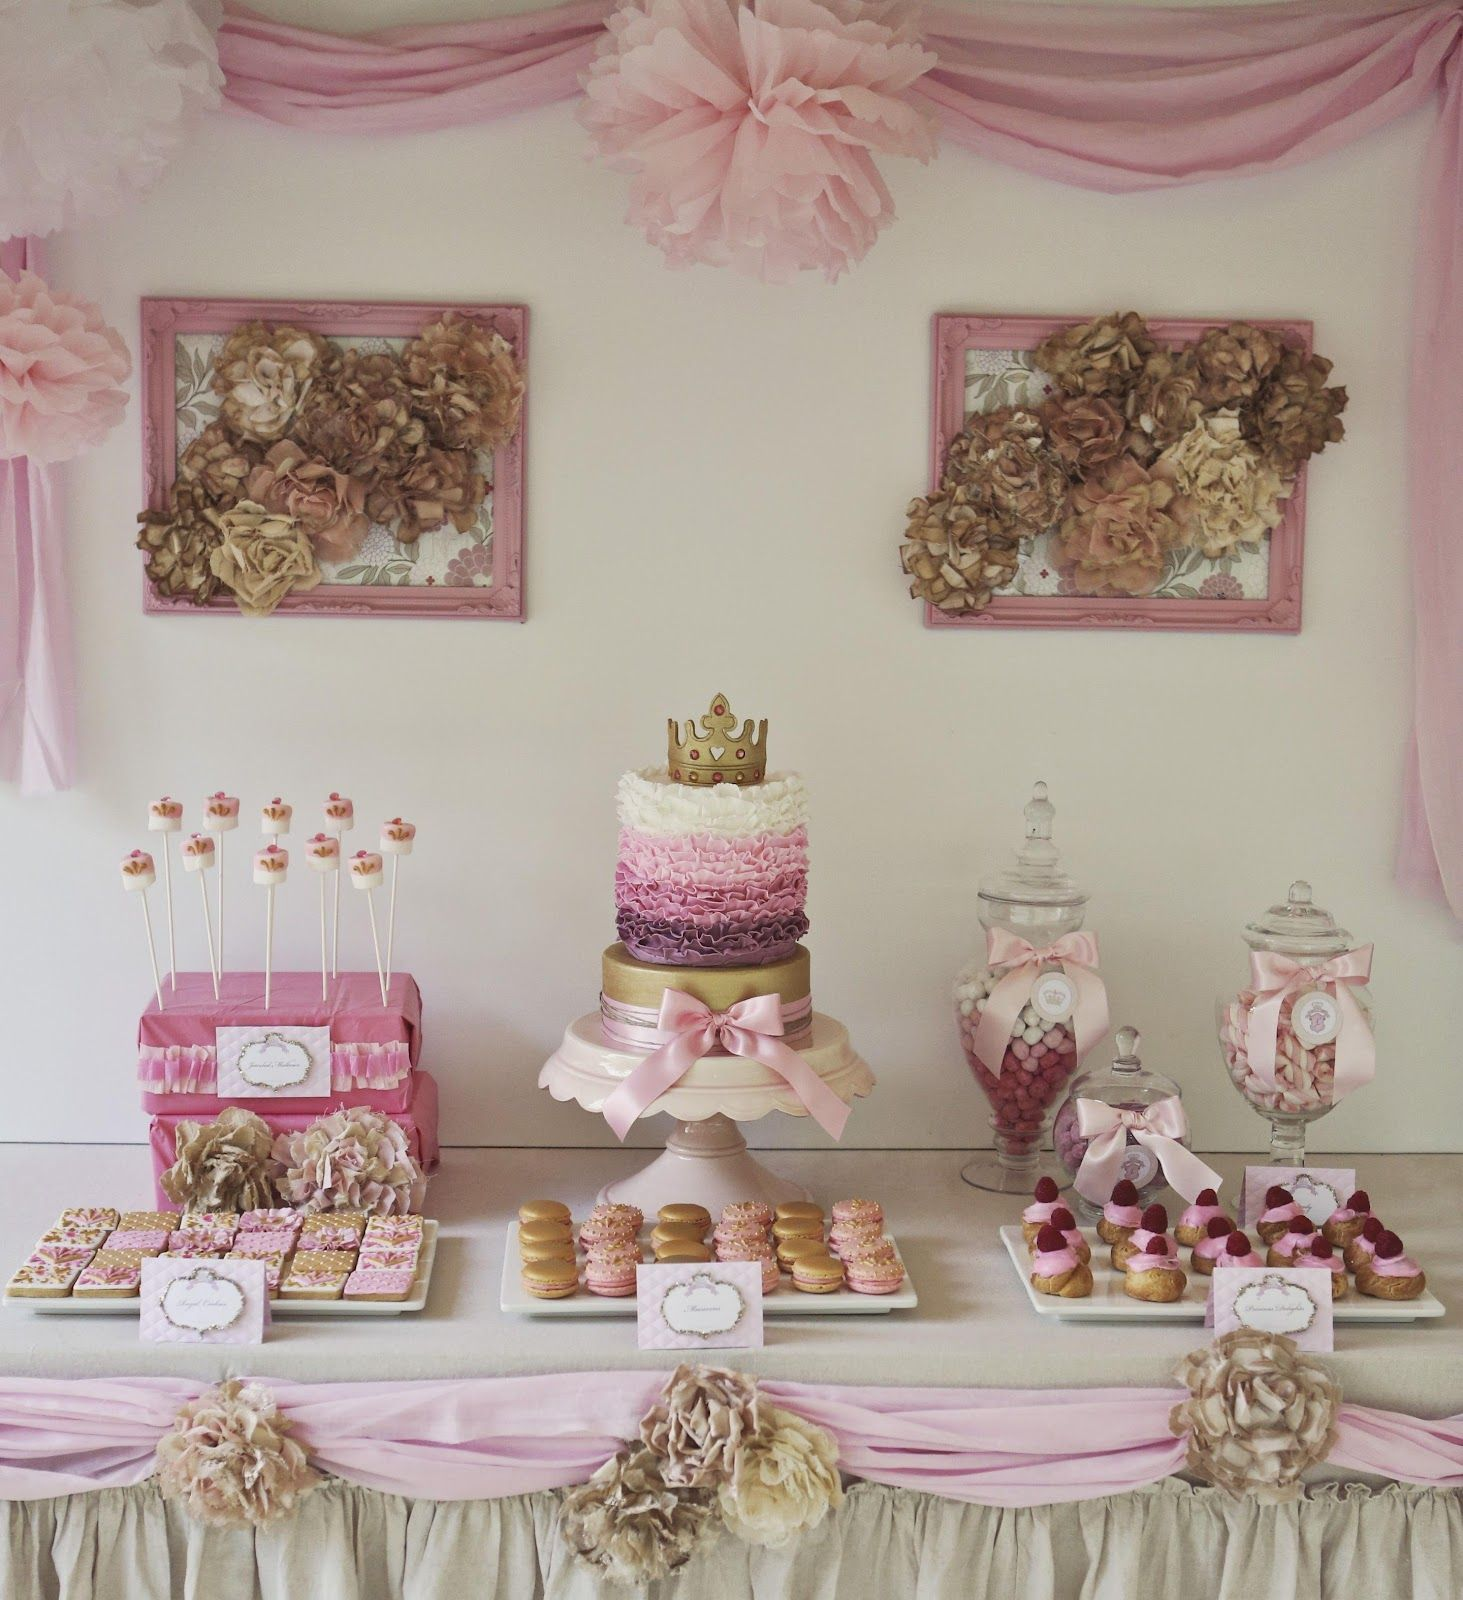 5 year old birthday girl party ideas Chic Princess 8th